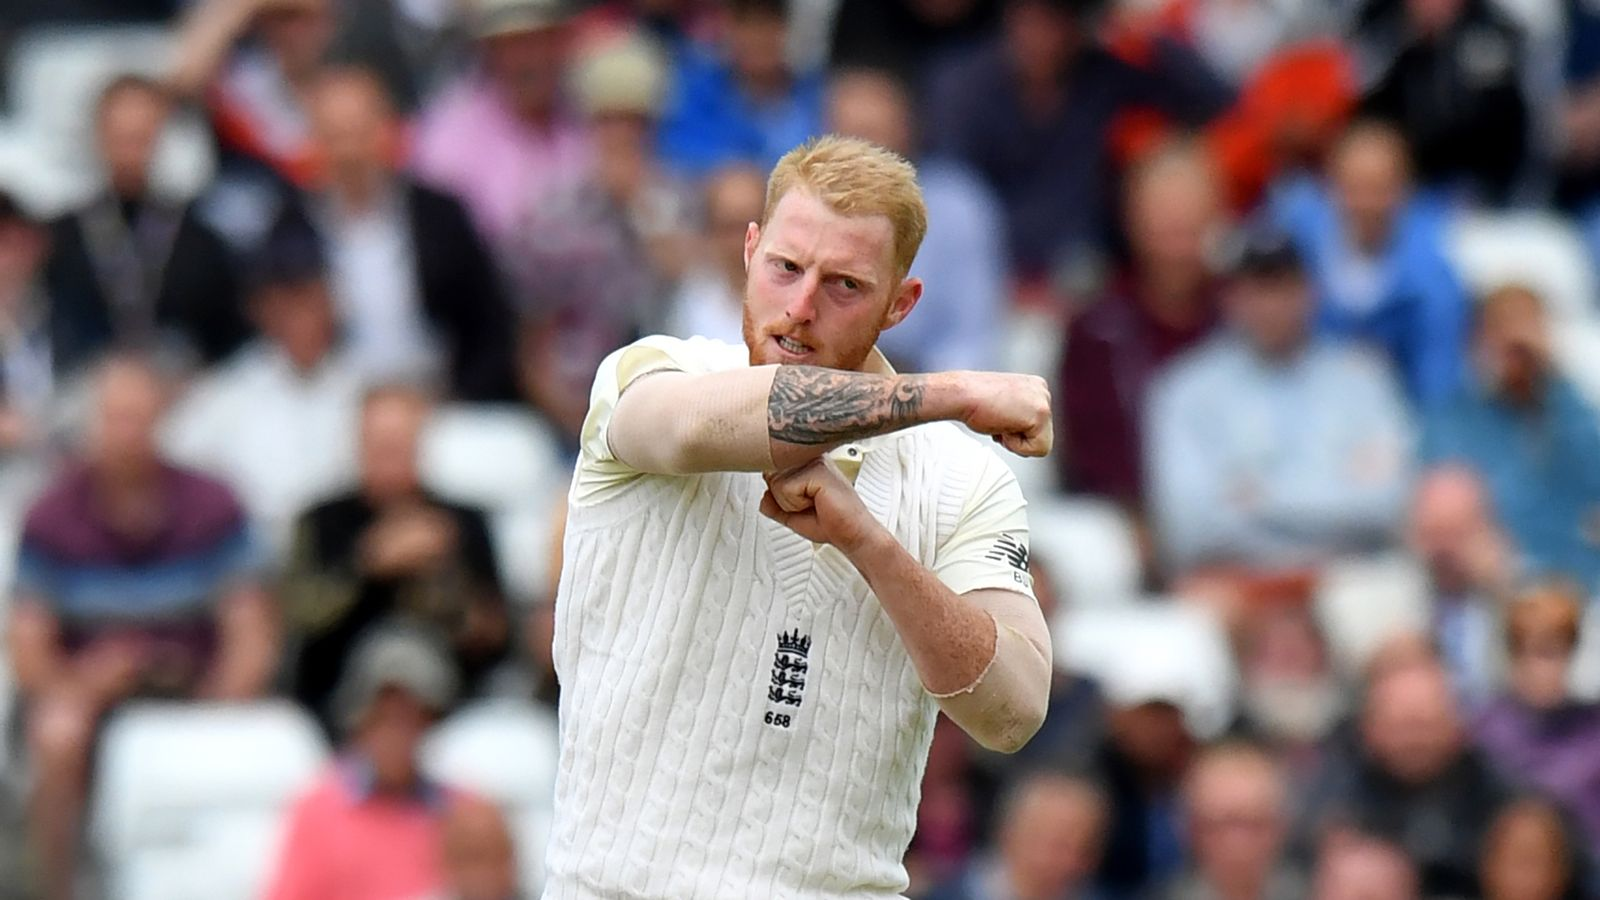 Ben Stokes has suffered a lot in the recent past (Image: SkySports)